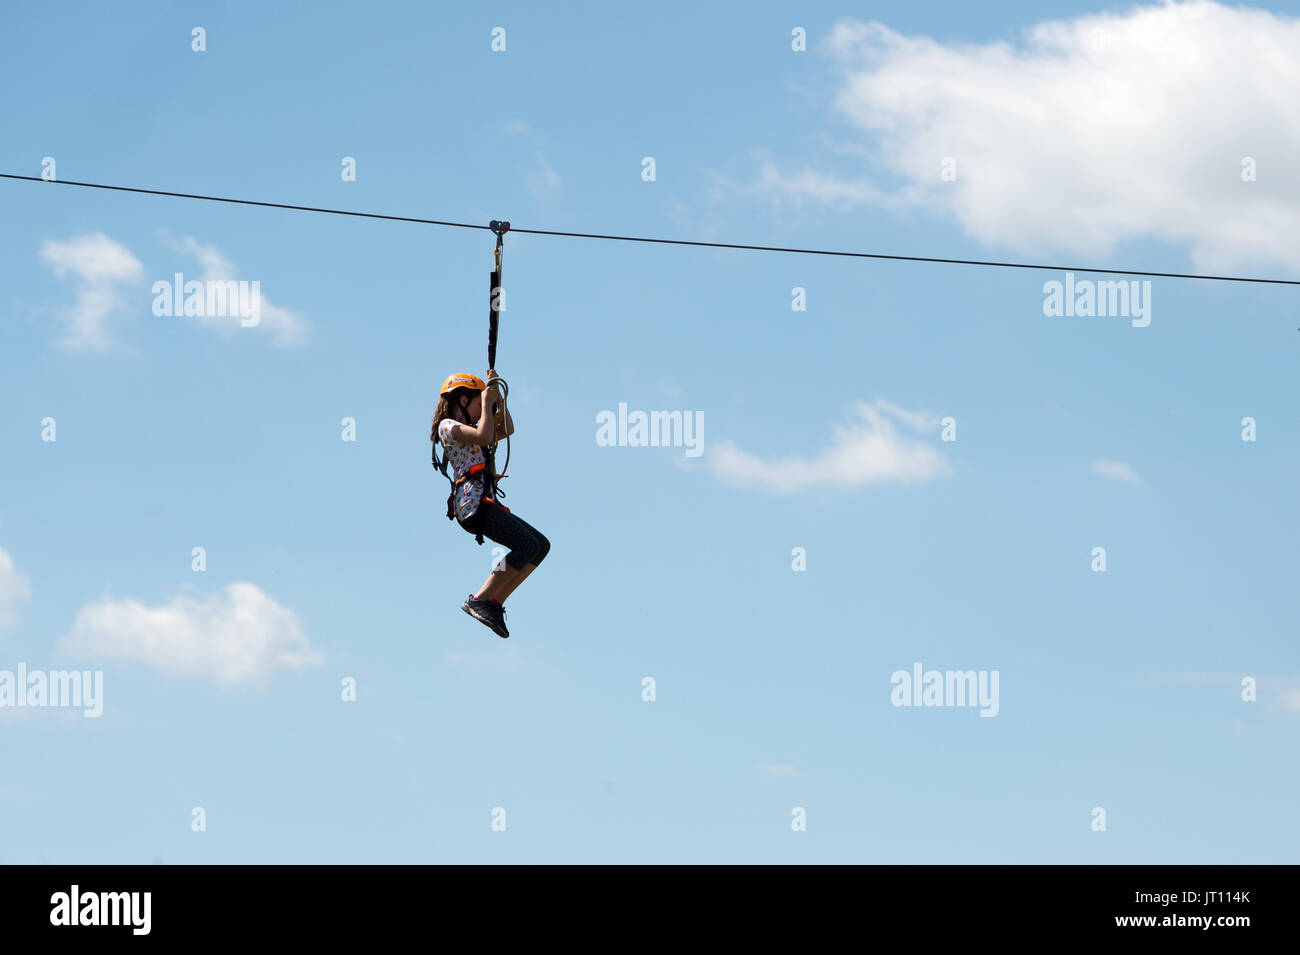 Konigstein, Germany. 05th Aug, 2017. A kid is using the zip line during the 'Festung Aktiv' outdoor sports festival in Konigstein, Germany, 05 August 2017. The festival offers visitors workshops, shows and presentations related to active sports. Photo: Arno Burgi/dpa-Zentralbild/dpa/Alamy Live News - Stock Image